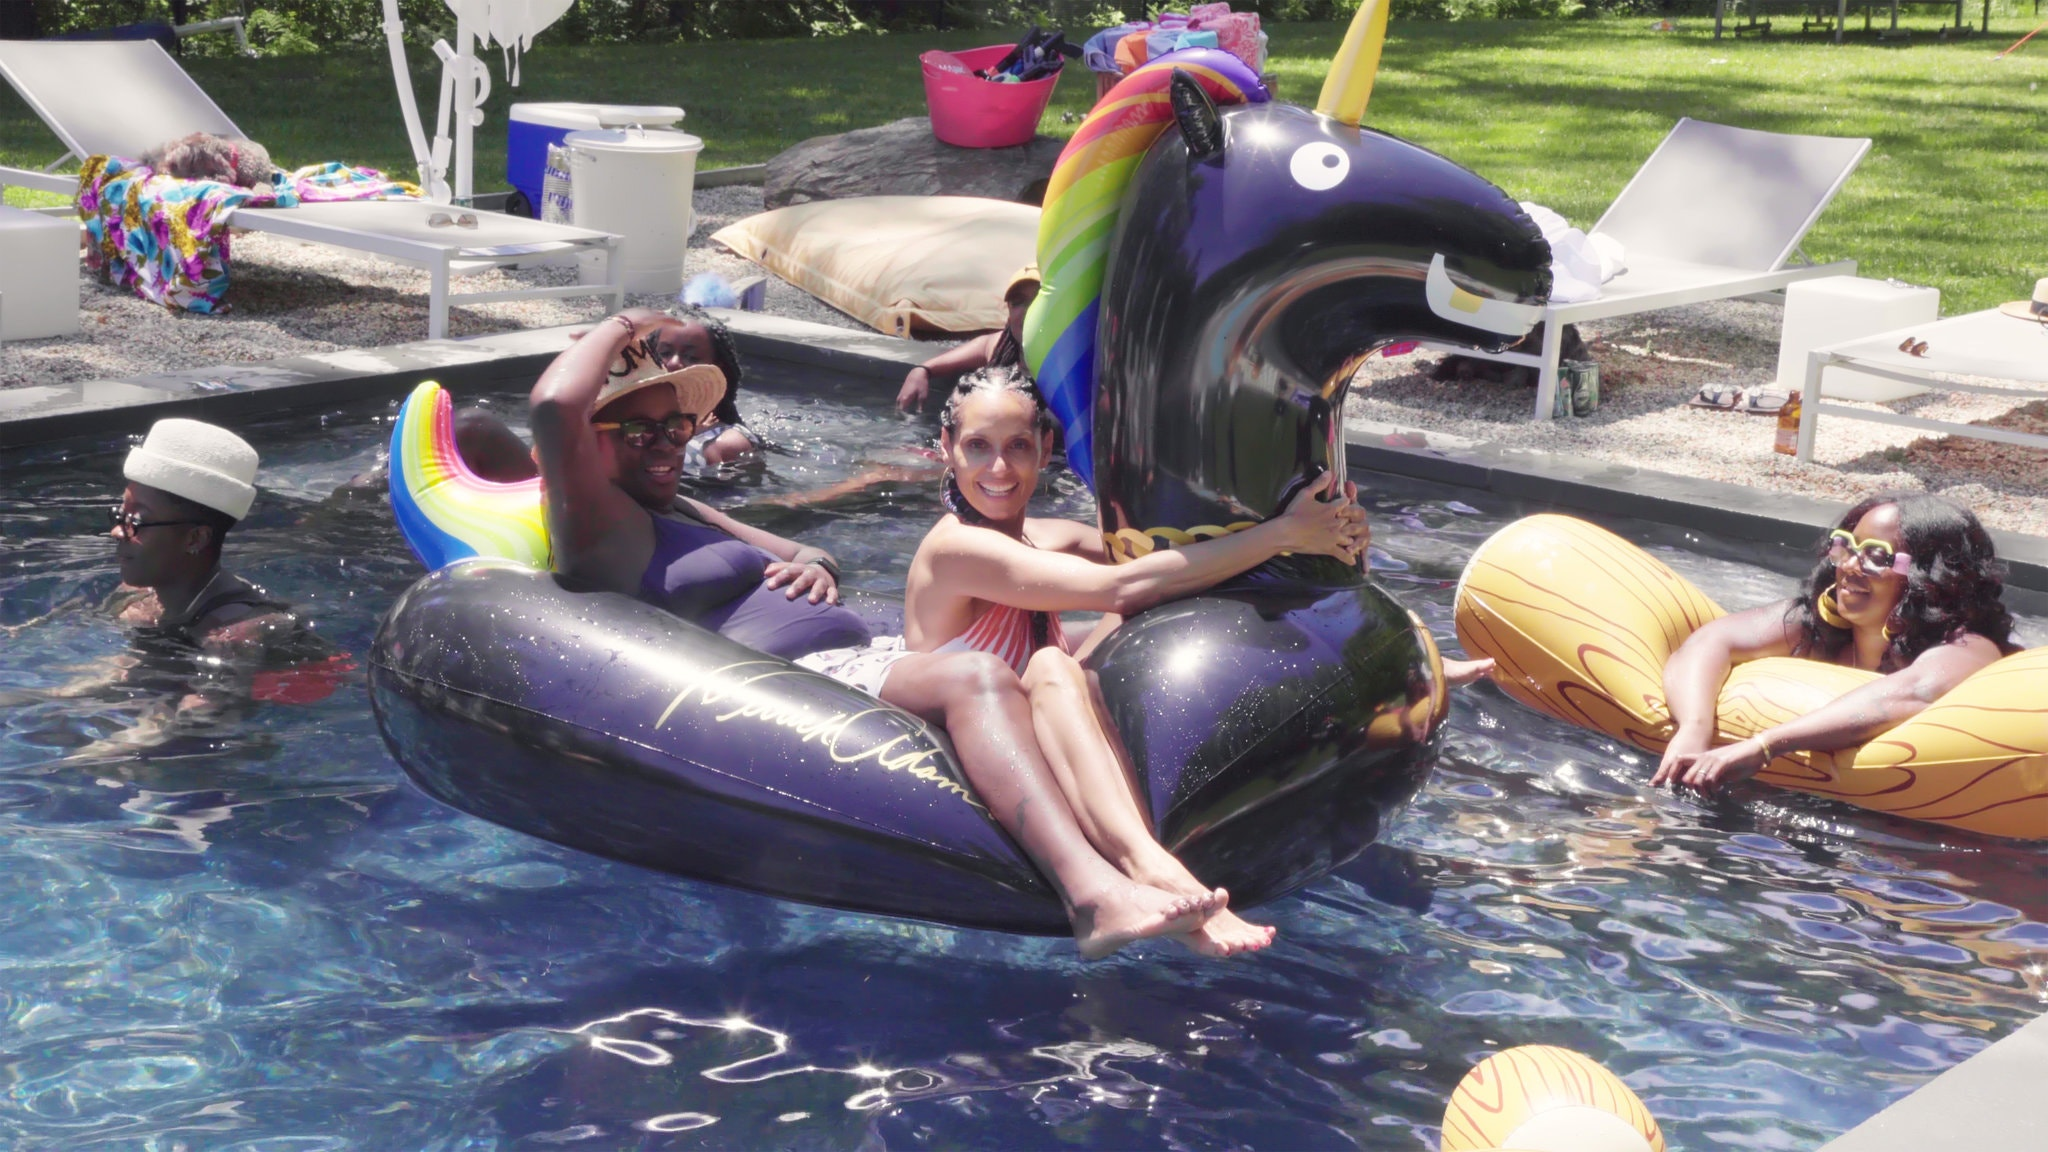 Thomas, left, and Chevremont in their swimming pool, seated on a float designed by the artist Derrick Adams.CreditScott J. Ross.